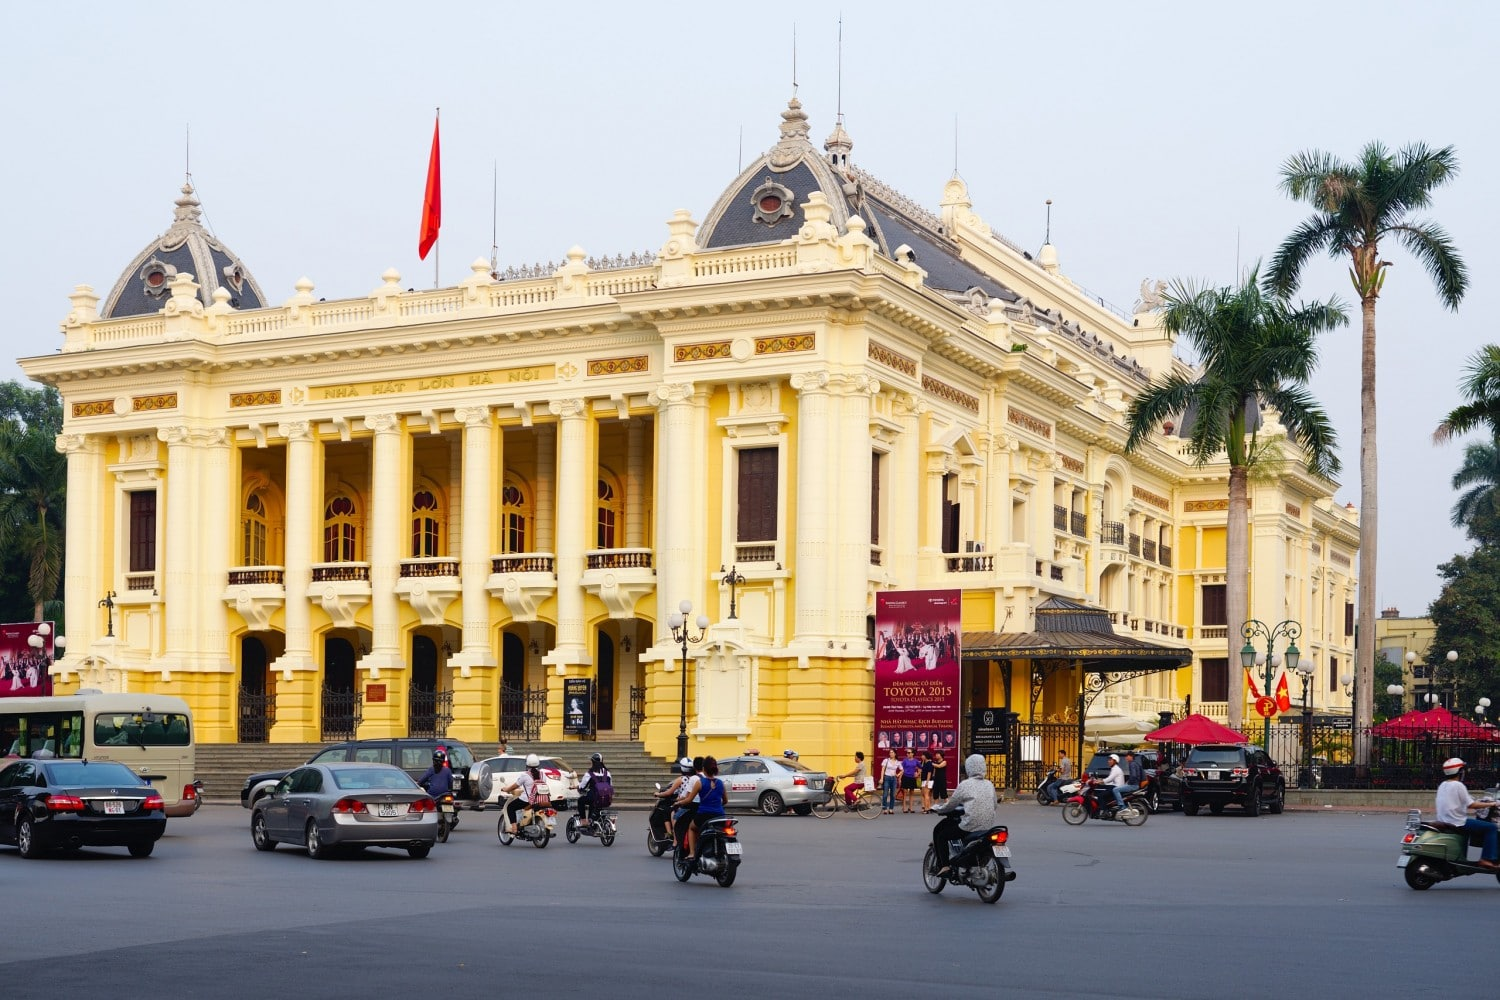 Don't miss a show at the opera house when you are in Hanoi